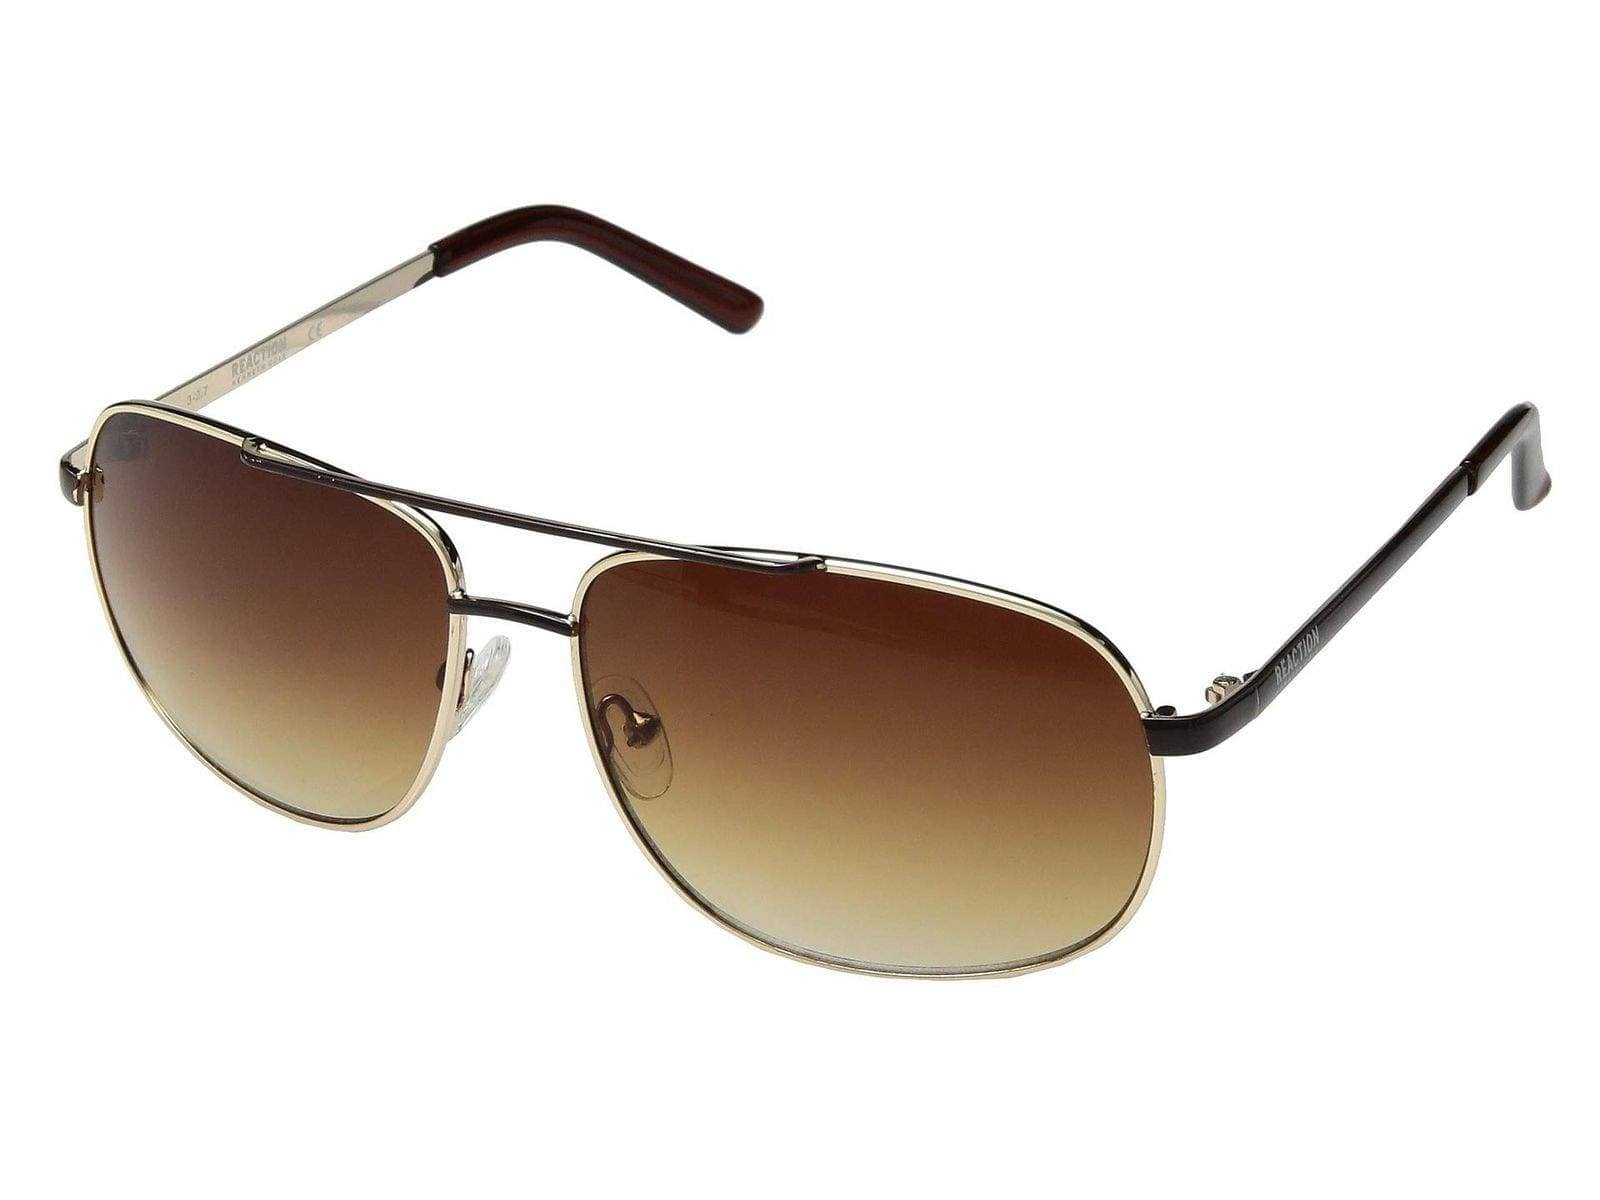 abbd3b97323 Sunglasses Sale  Ray-Ban from  52